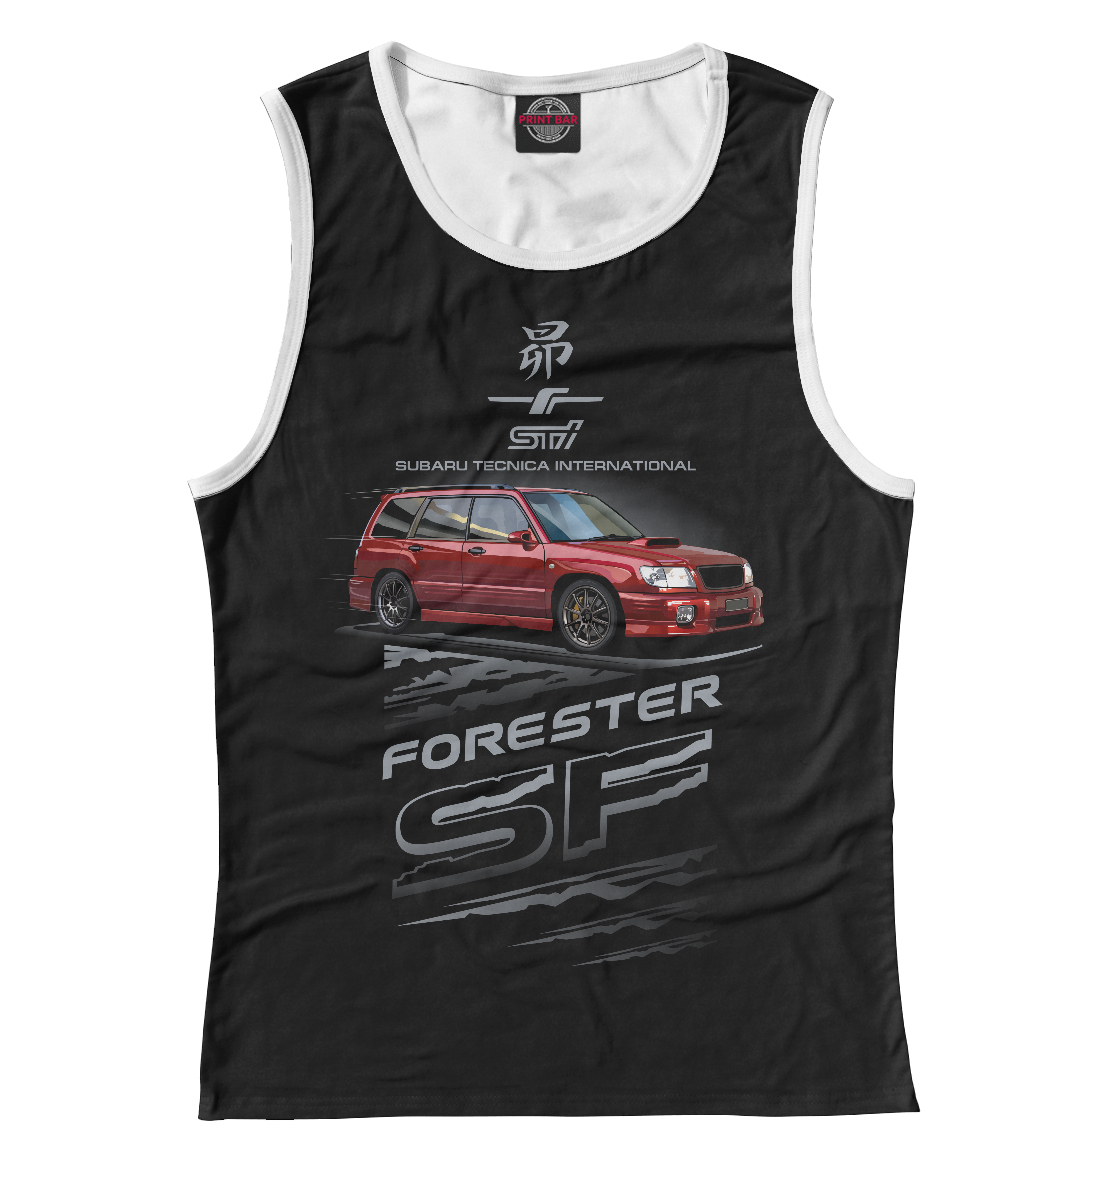 Forester sf3